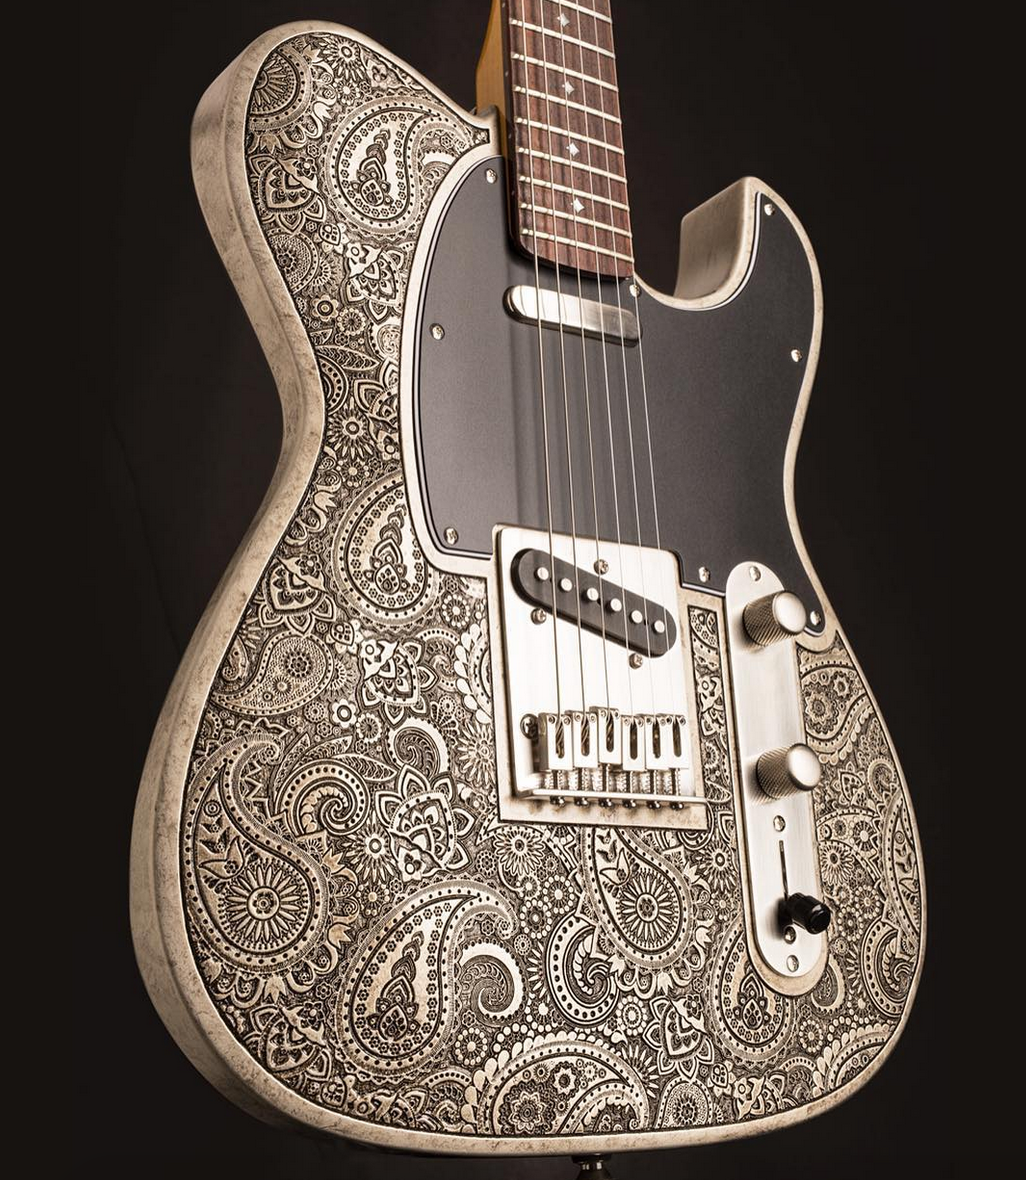 Dean Zelinsky Dellatera Paisley Engraved Guitars Amps